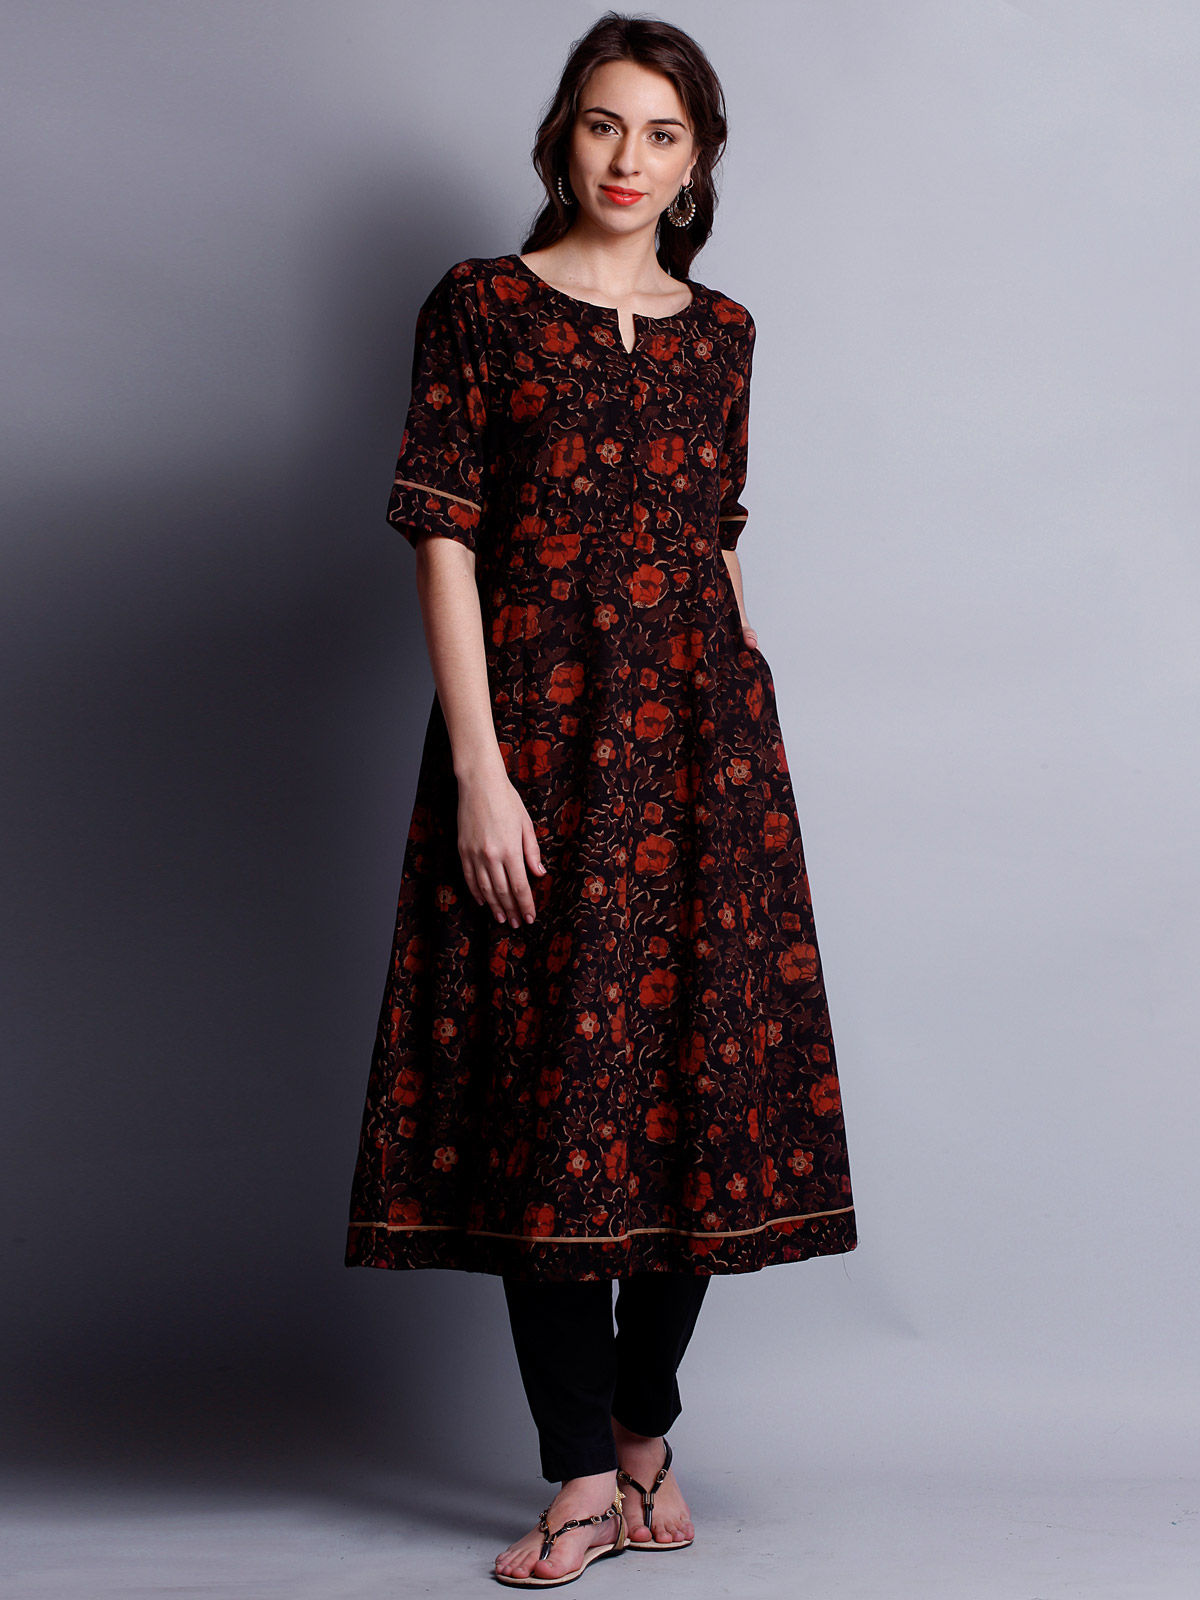 Block Printed 3/4 th sleeves ankle length Tunic